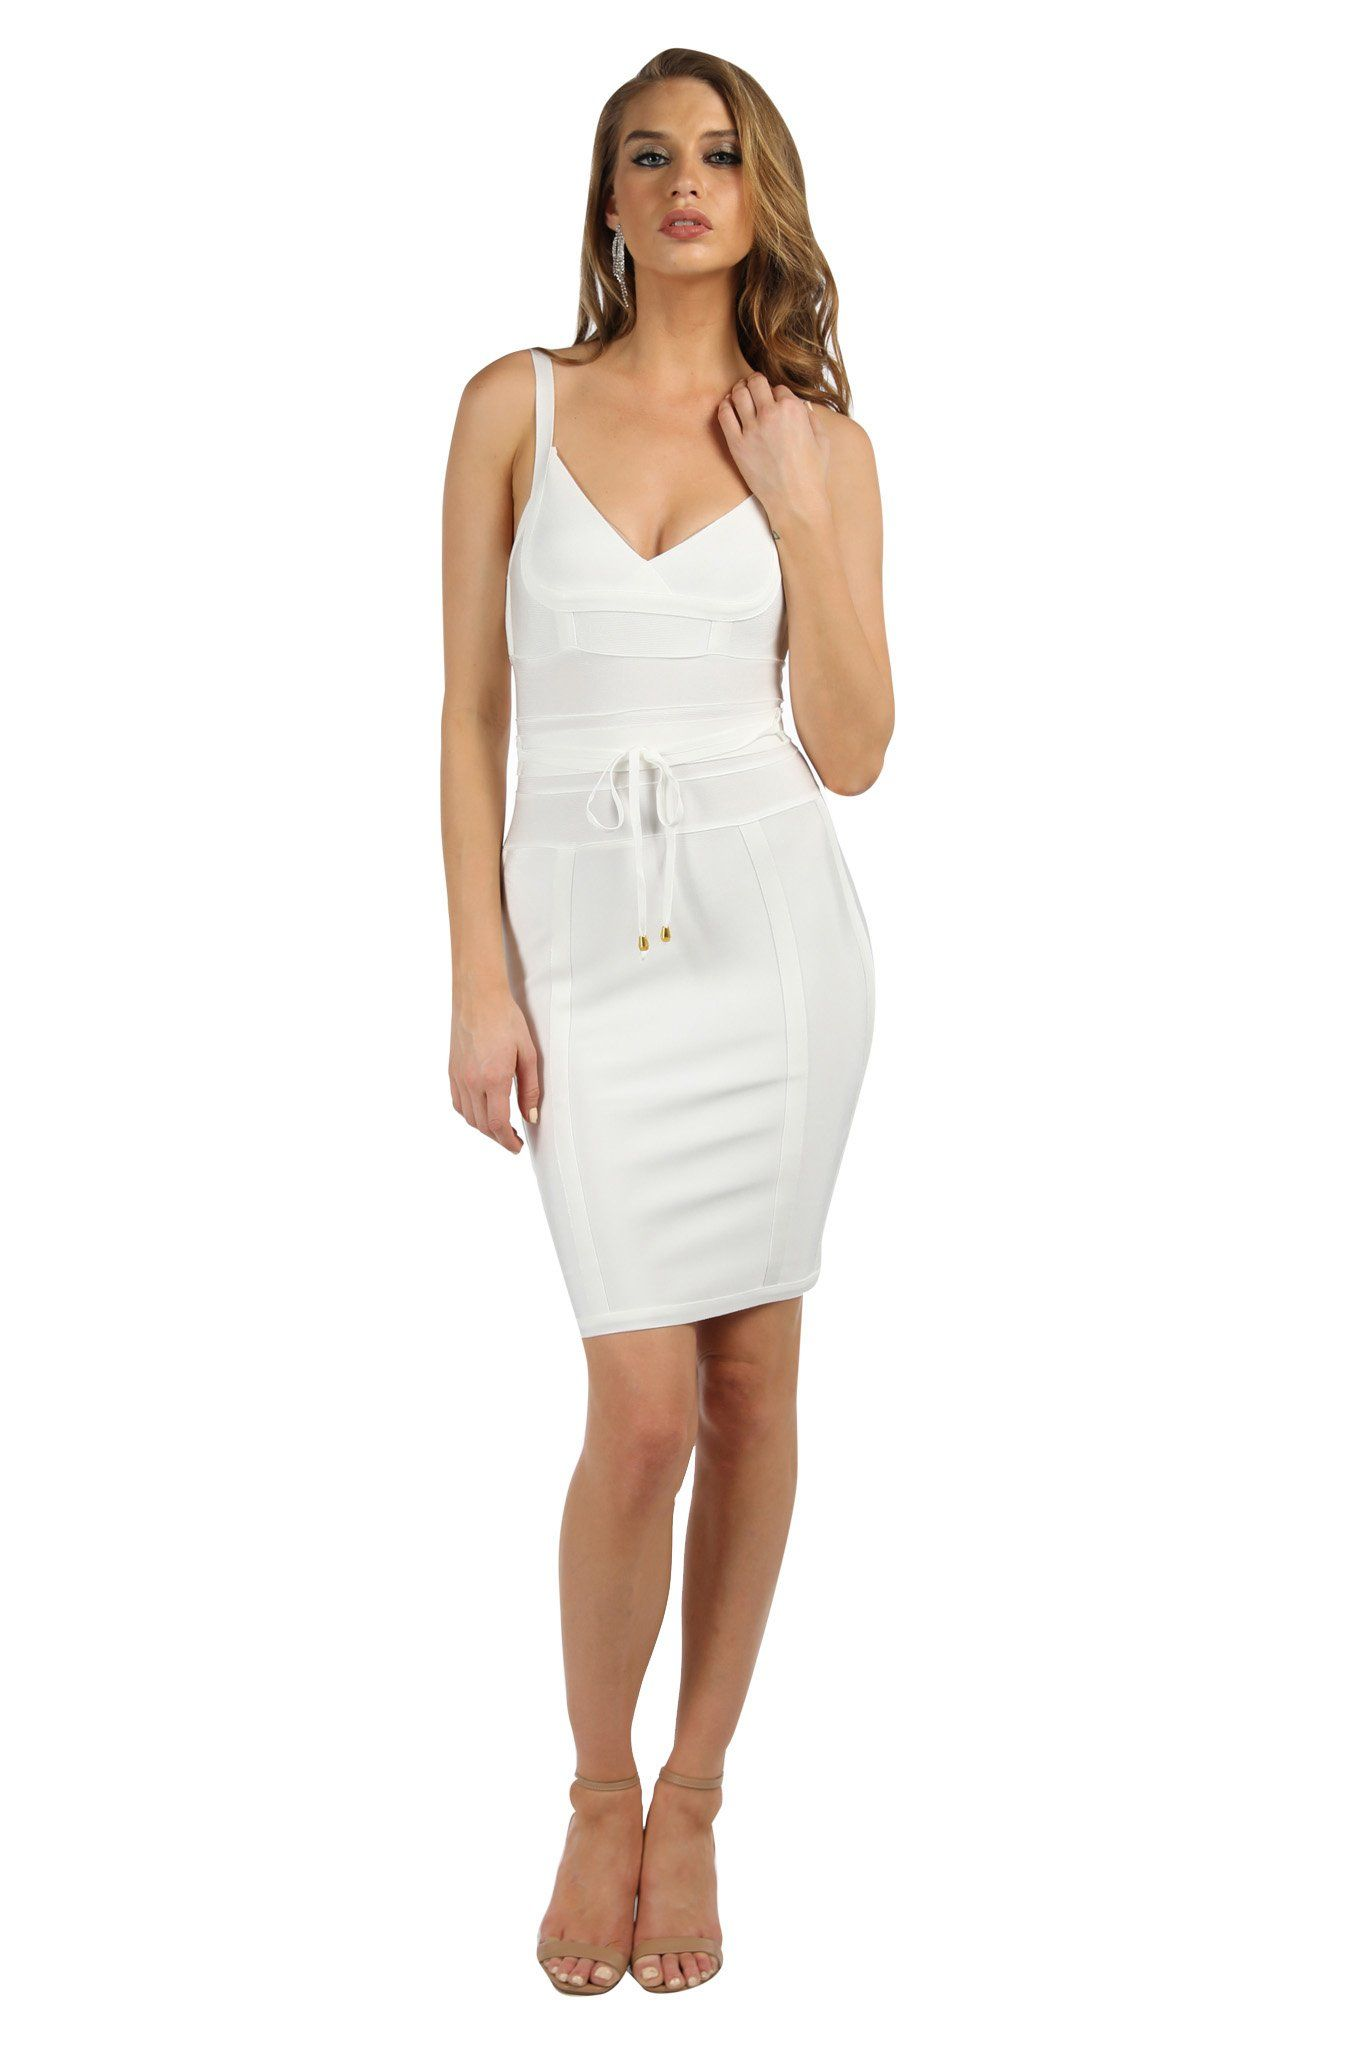 White mini sleeveless bandage dress with thin shoulder straps, thin removable bandage sash with gold hardware, and full-length back zipper